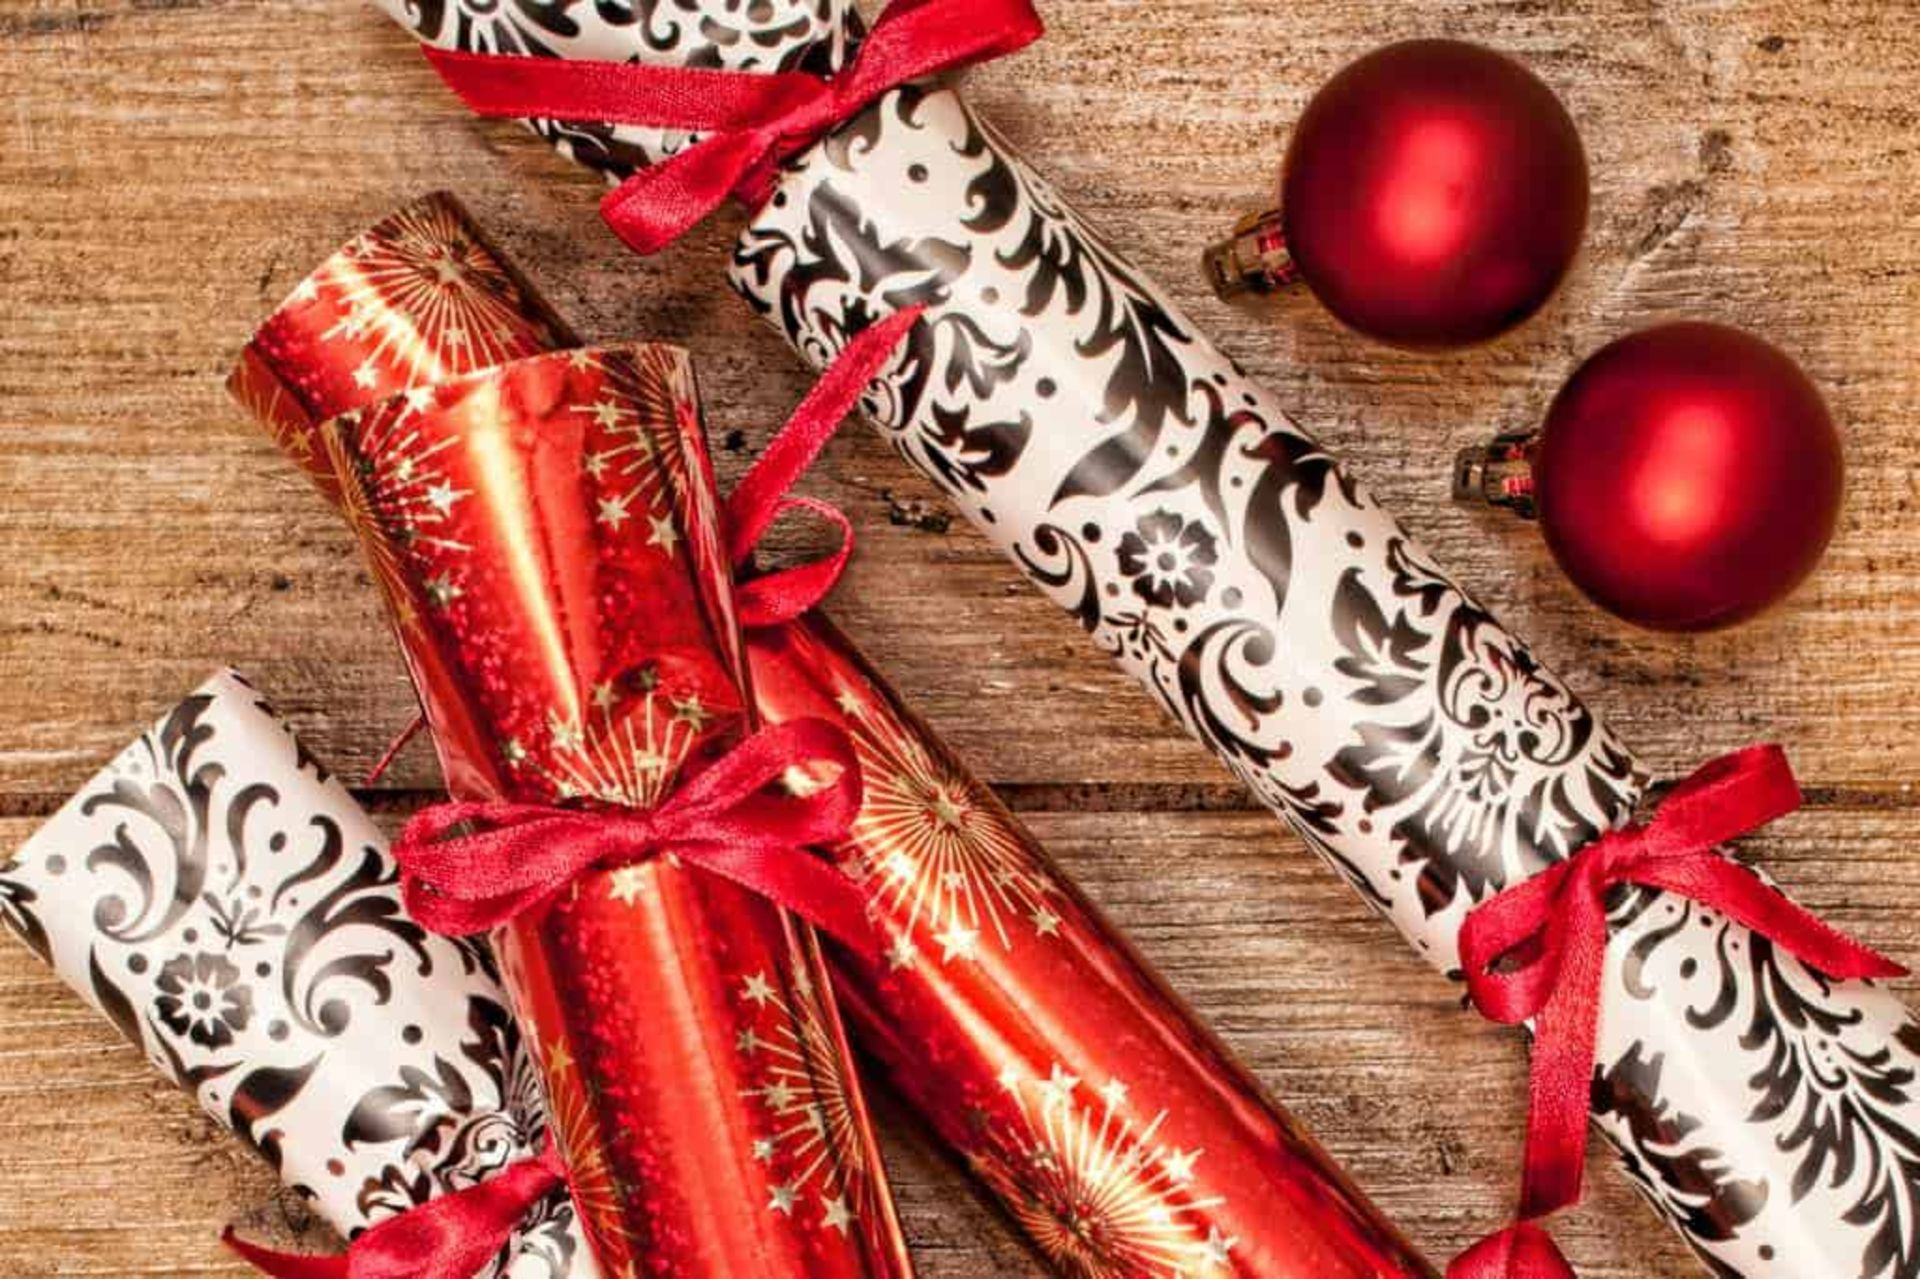 Lot 18170 - V Brand New Box of 12 Deluxe Christmas Crackers - Box of 12 - Red Design